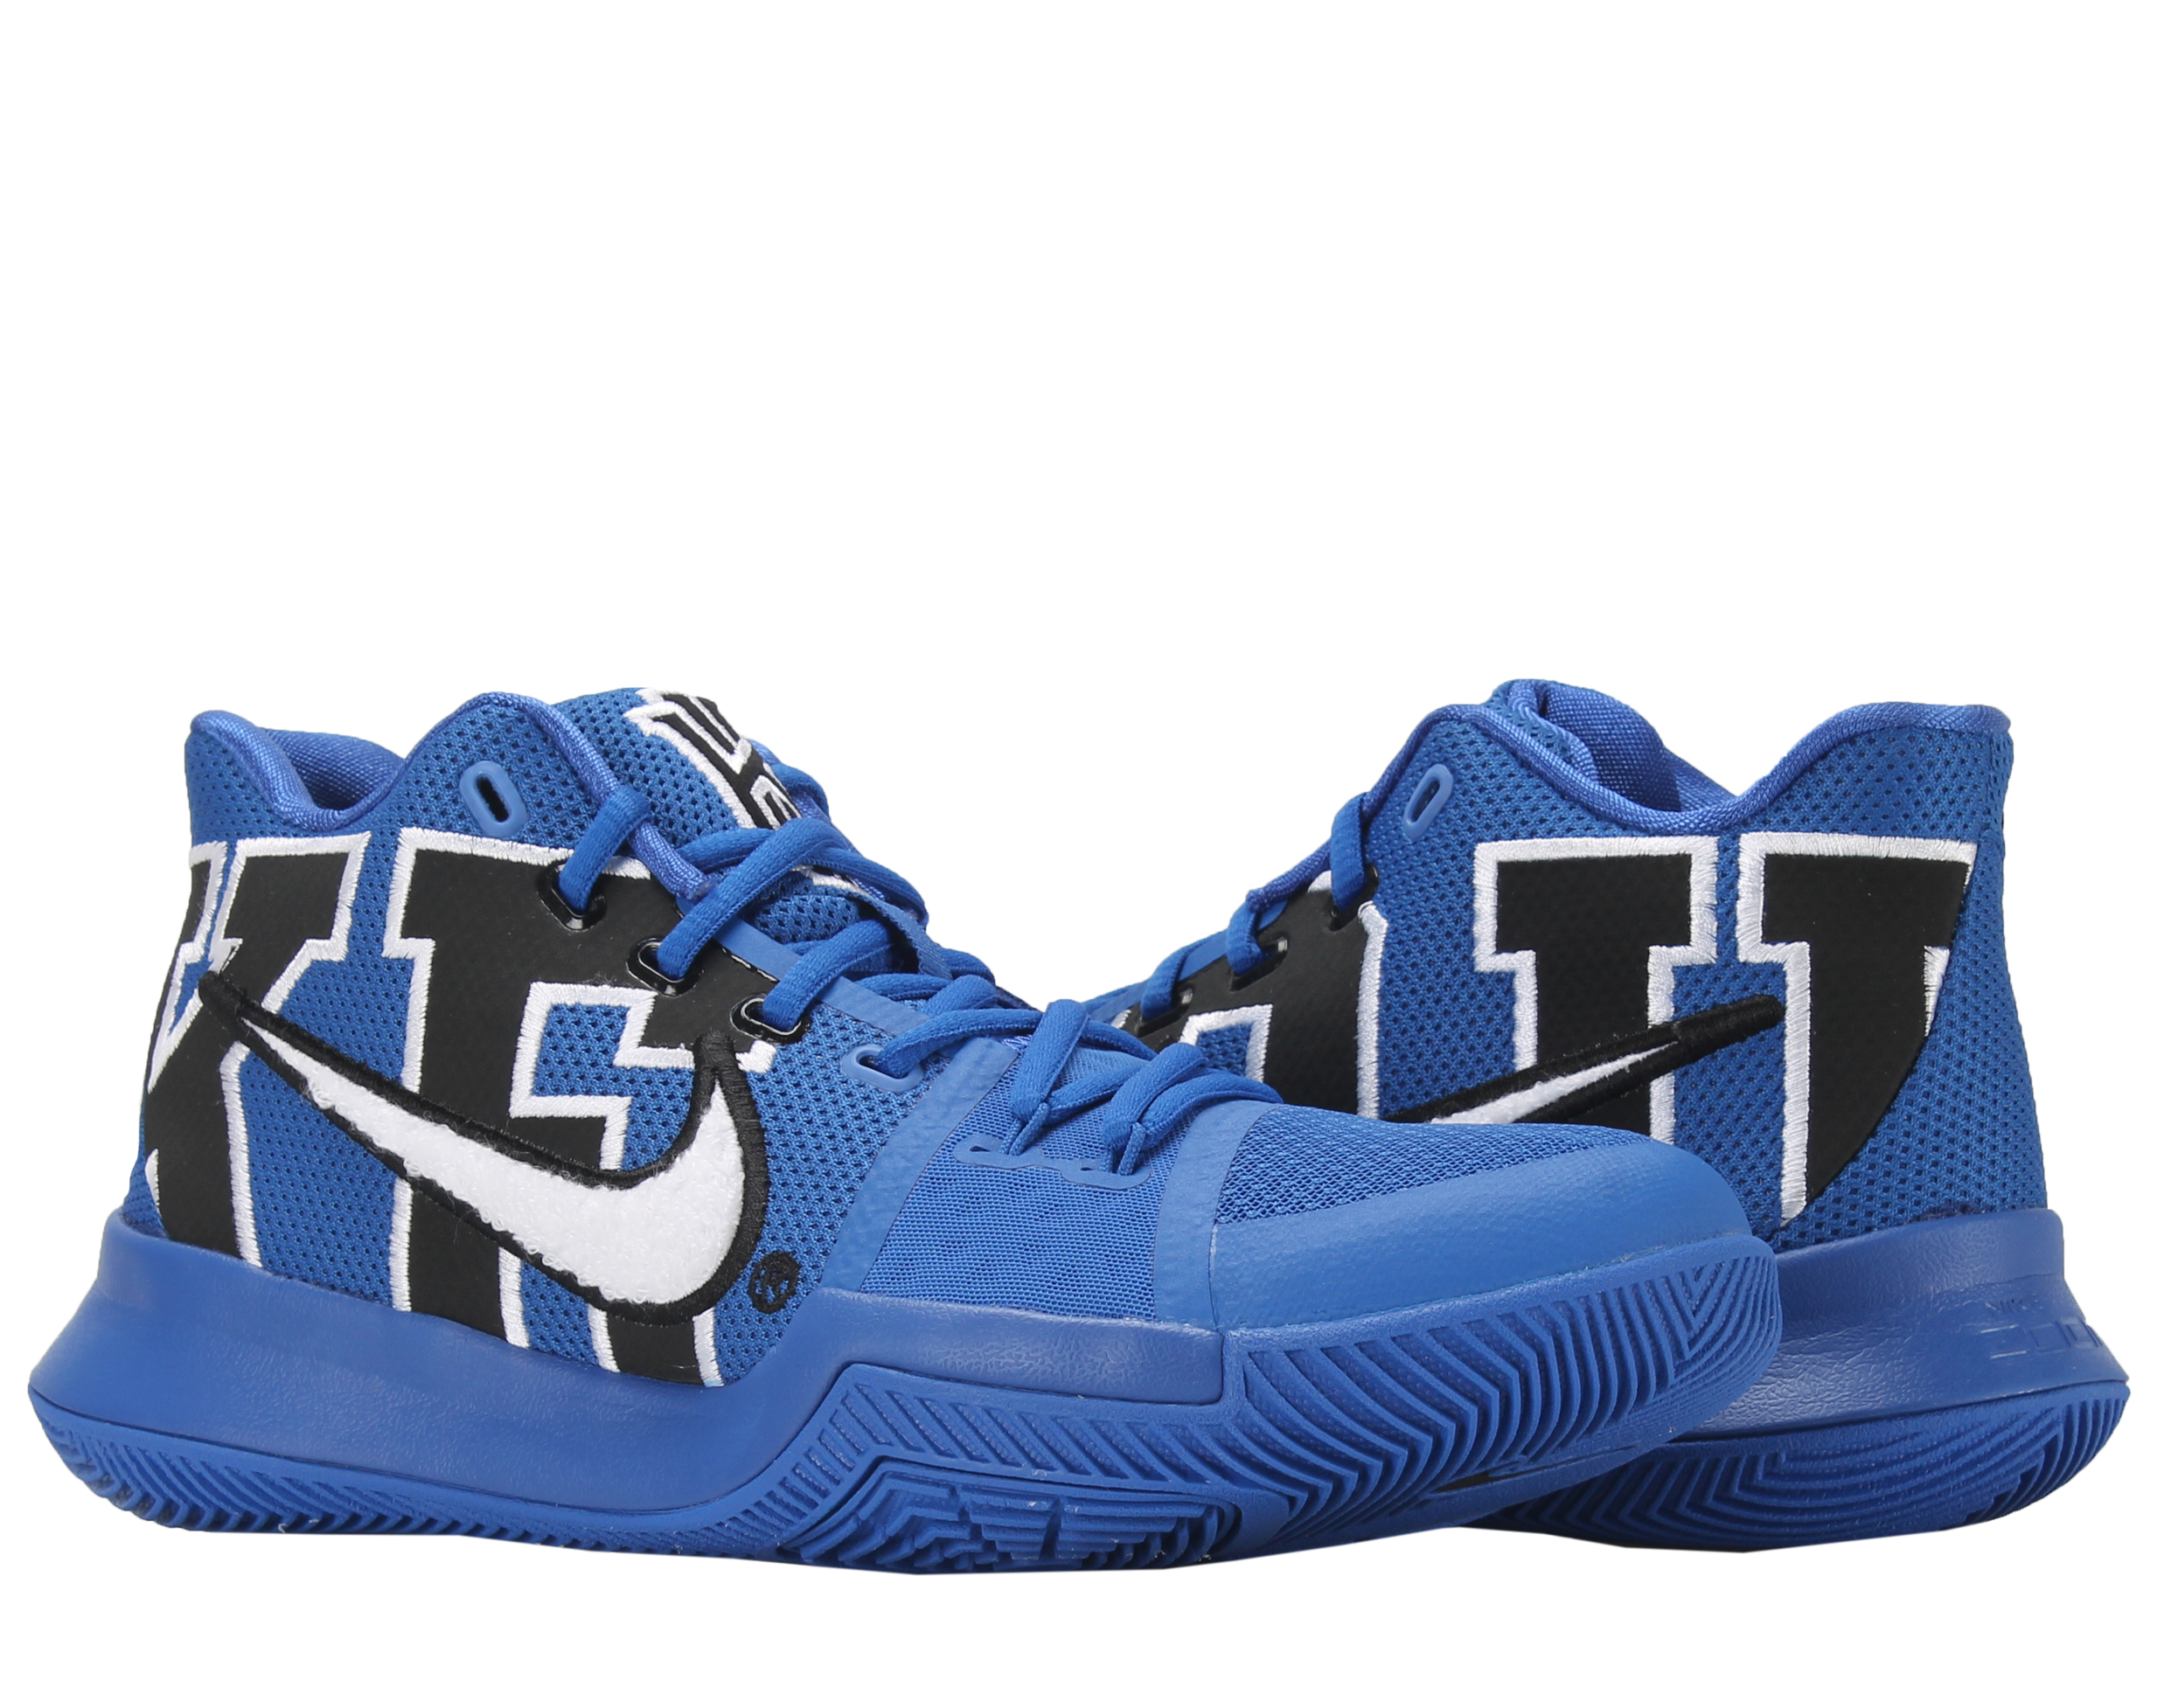 quality design c0b95 ba160 ... usa nike nike kyrie 3 duke black game royal mens basketball shoes f8d2a  e15a3